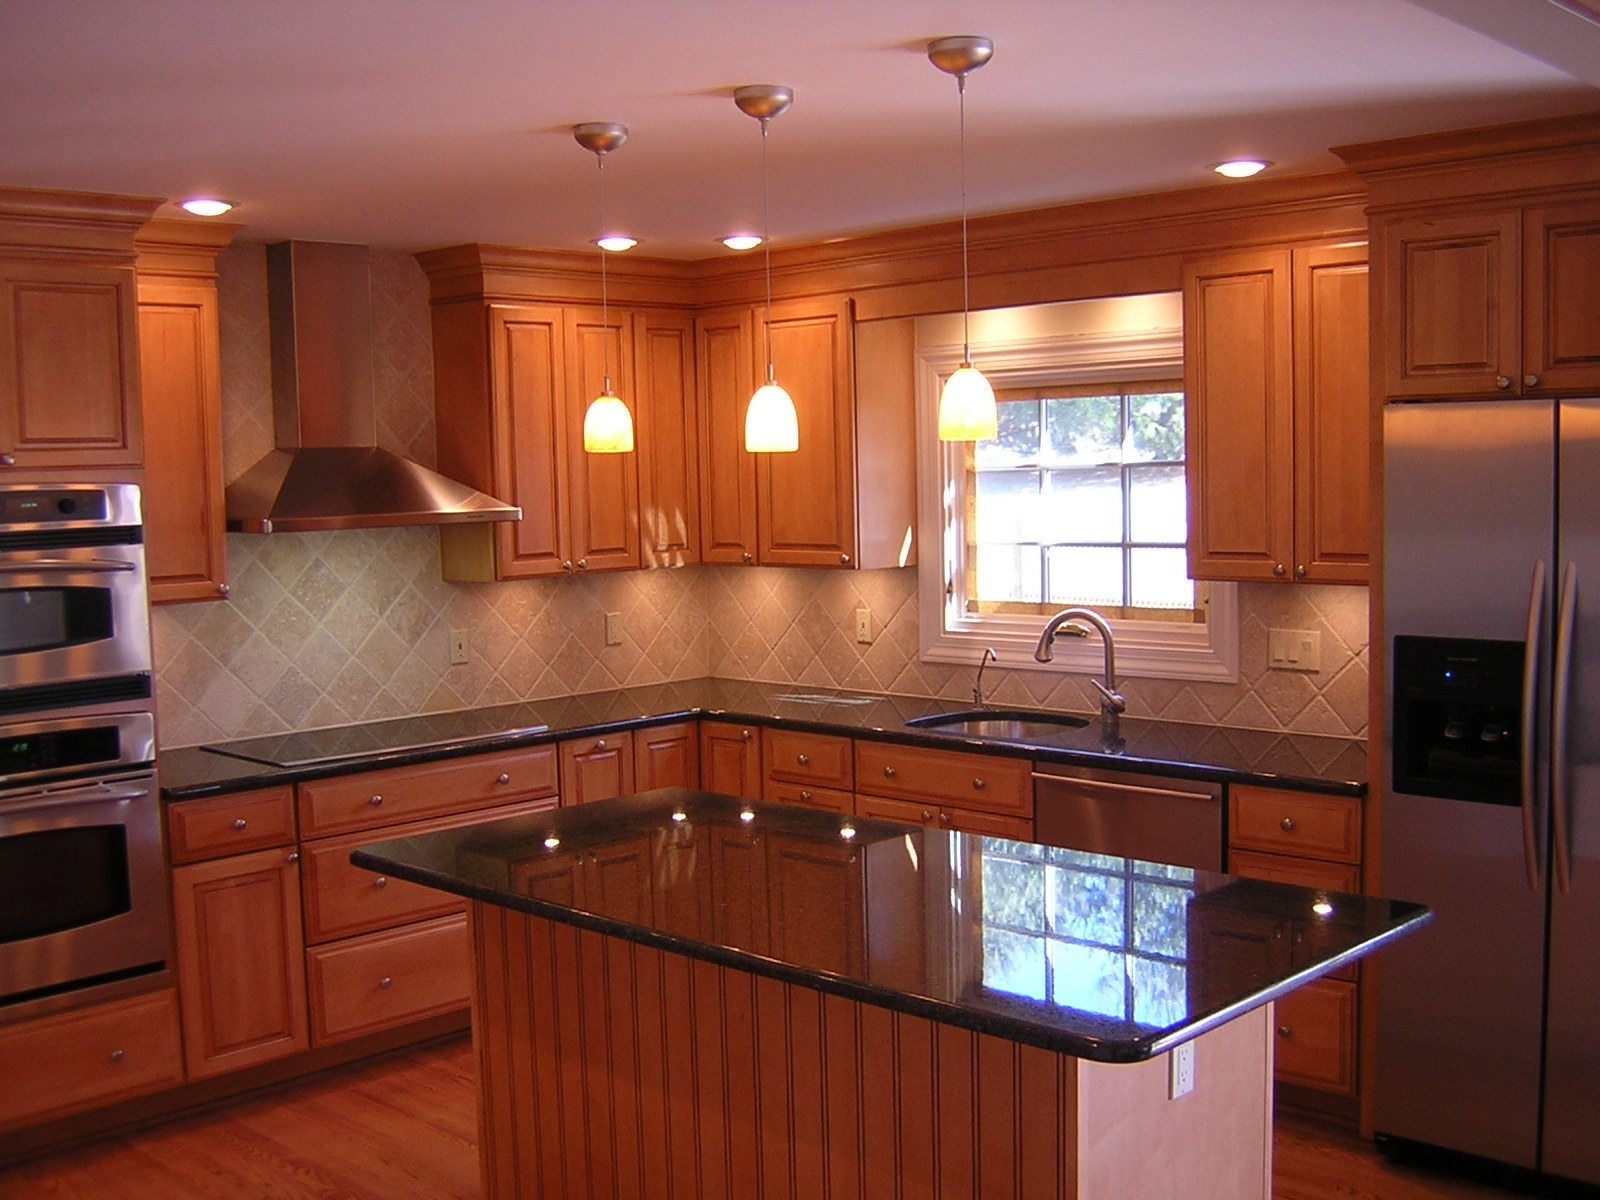 Best ideas about Remodeling Kitchen Ideas . Save or Pin Denver Kitchen Remodeling Now.